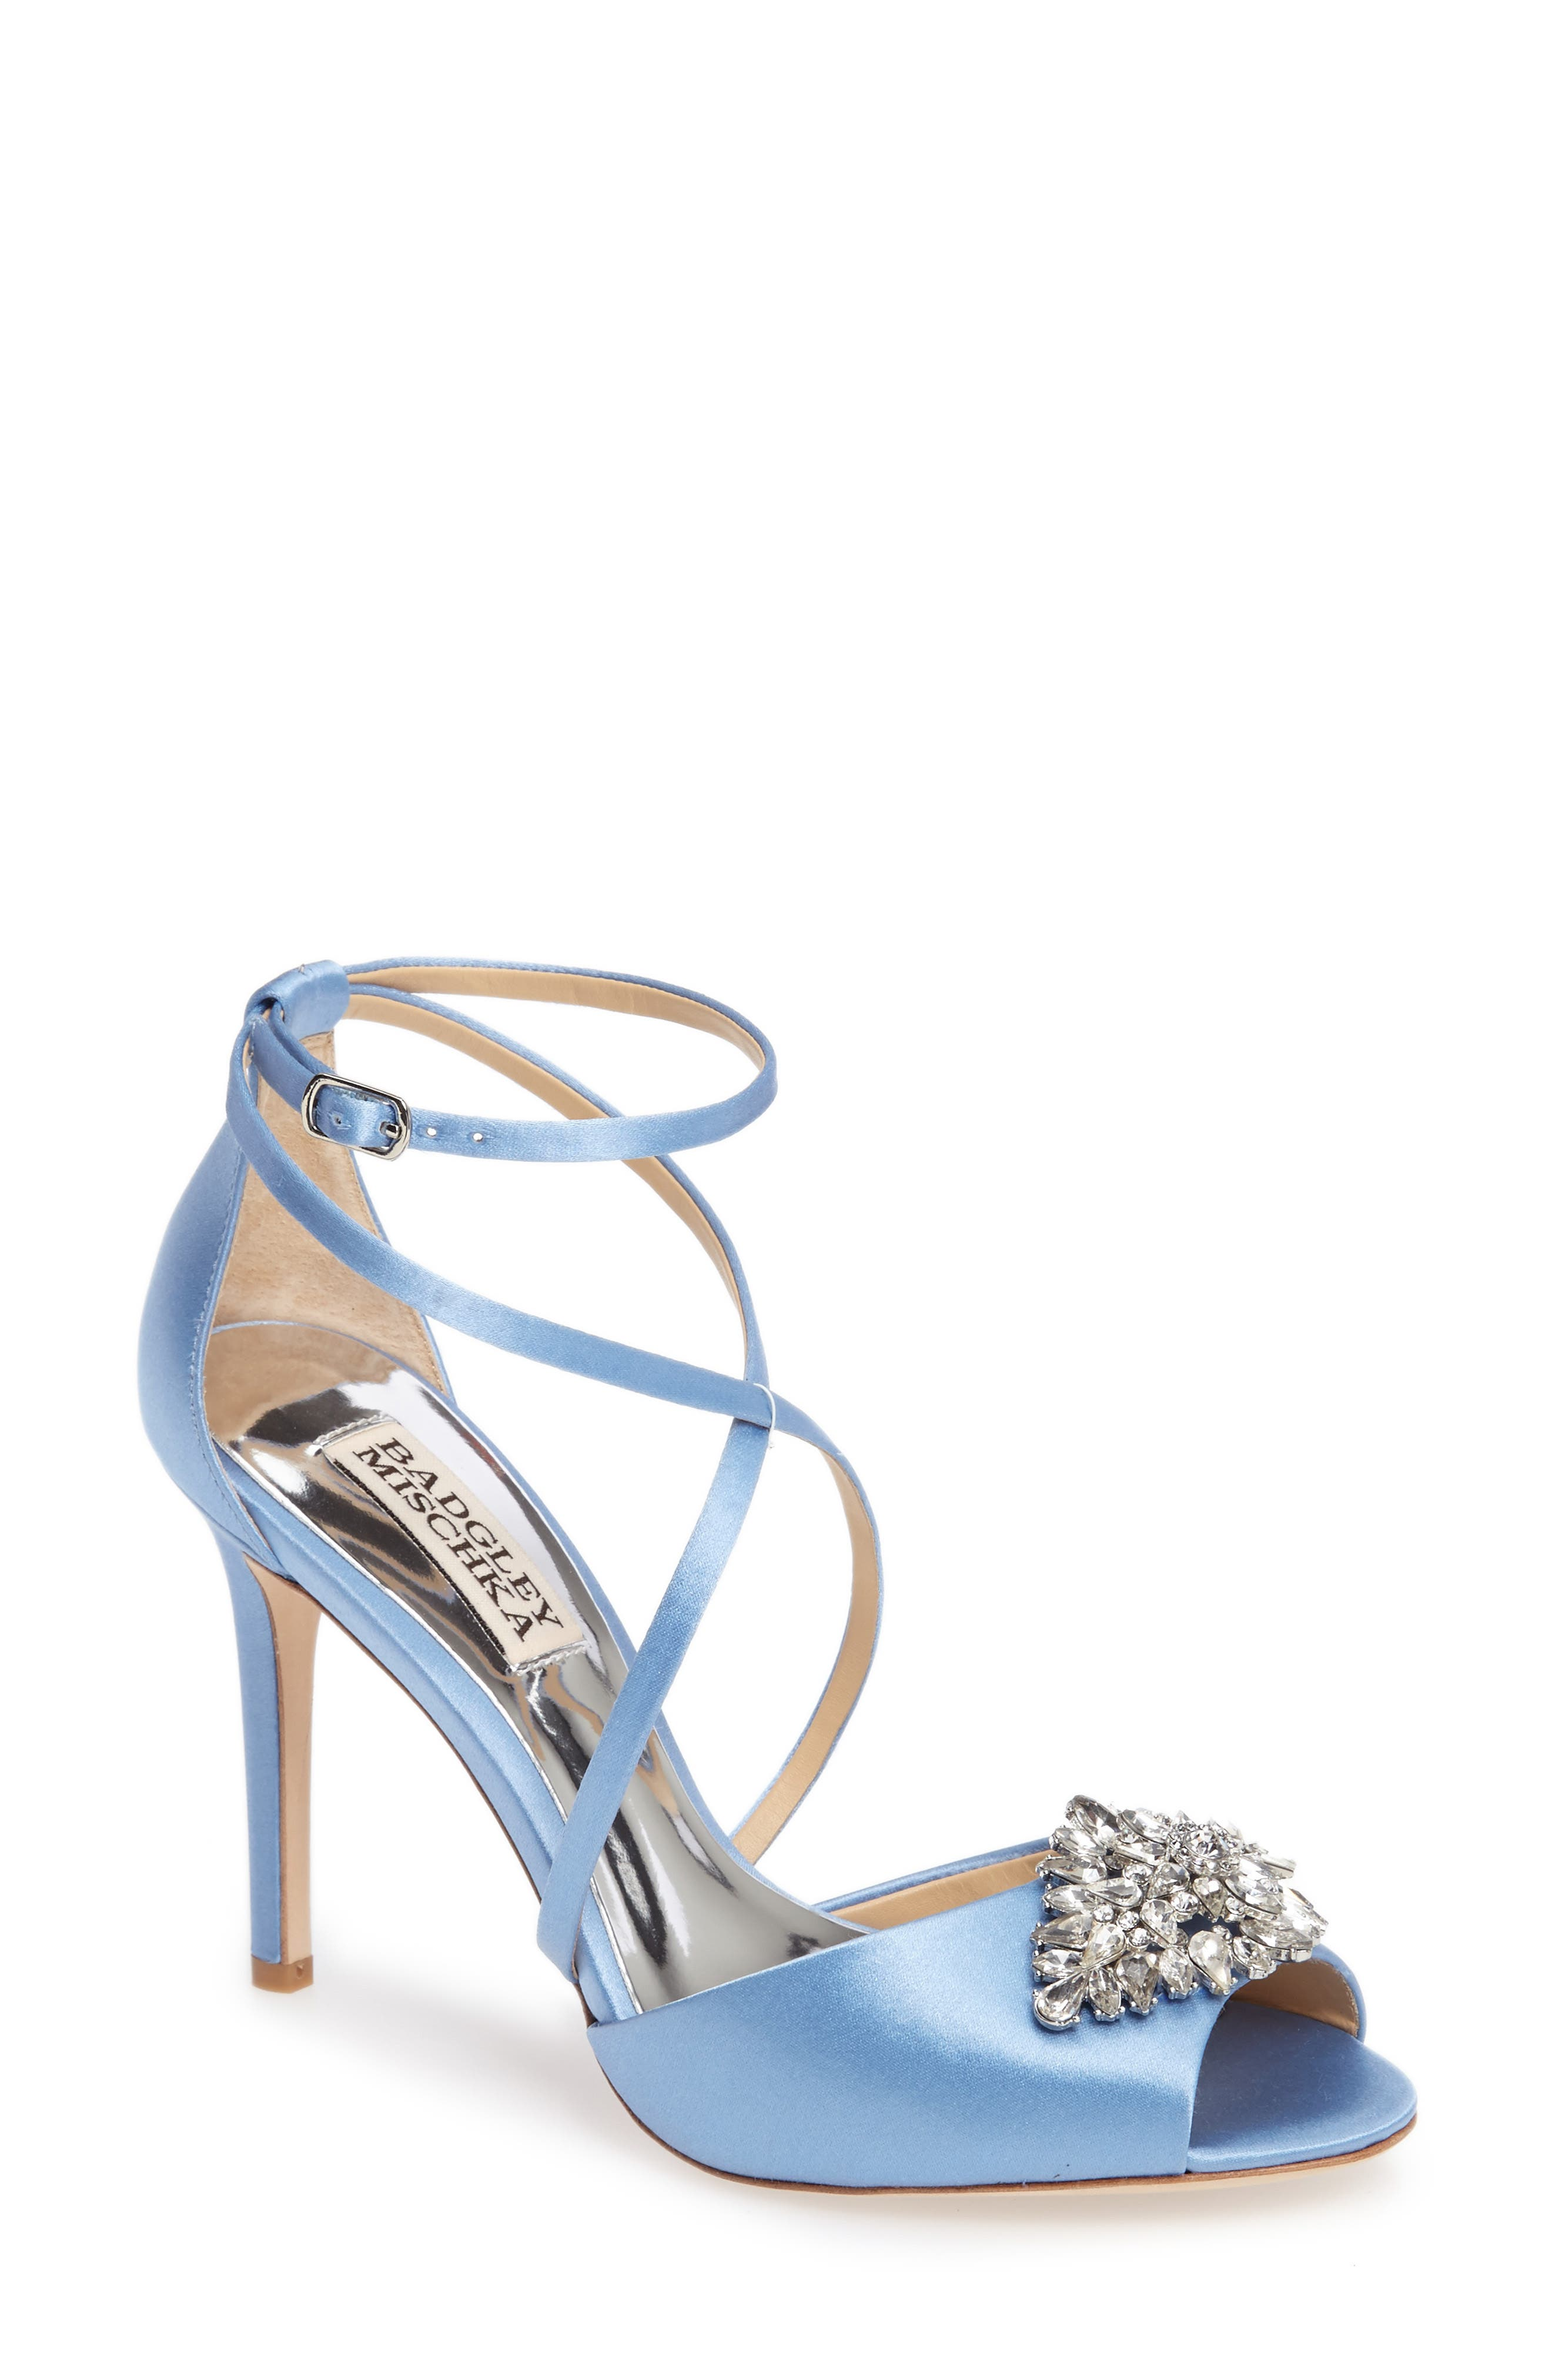 Tatum Embellished Strappy Sandal,                             Main thumbnail 1, color,                             Serenity Blue Satin